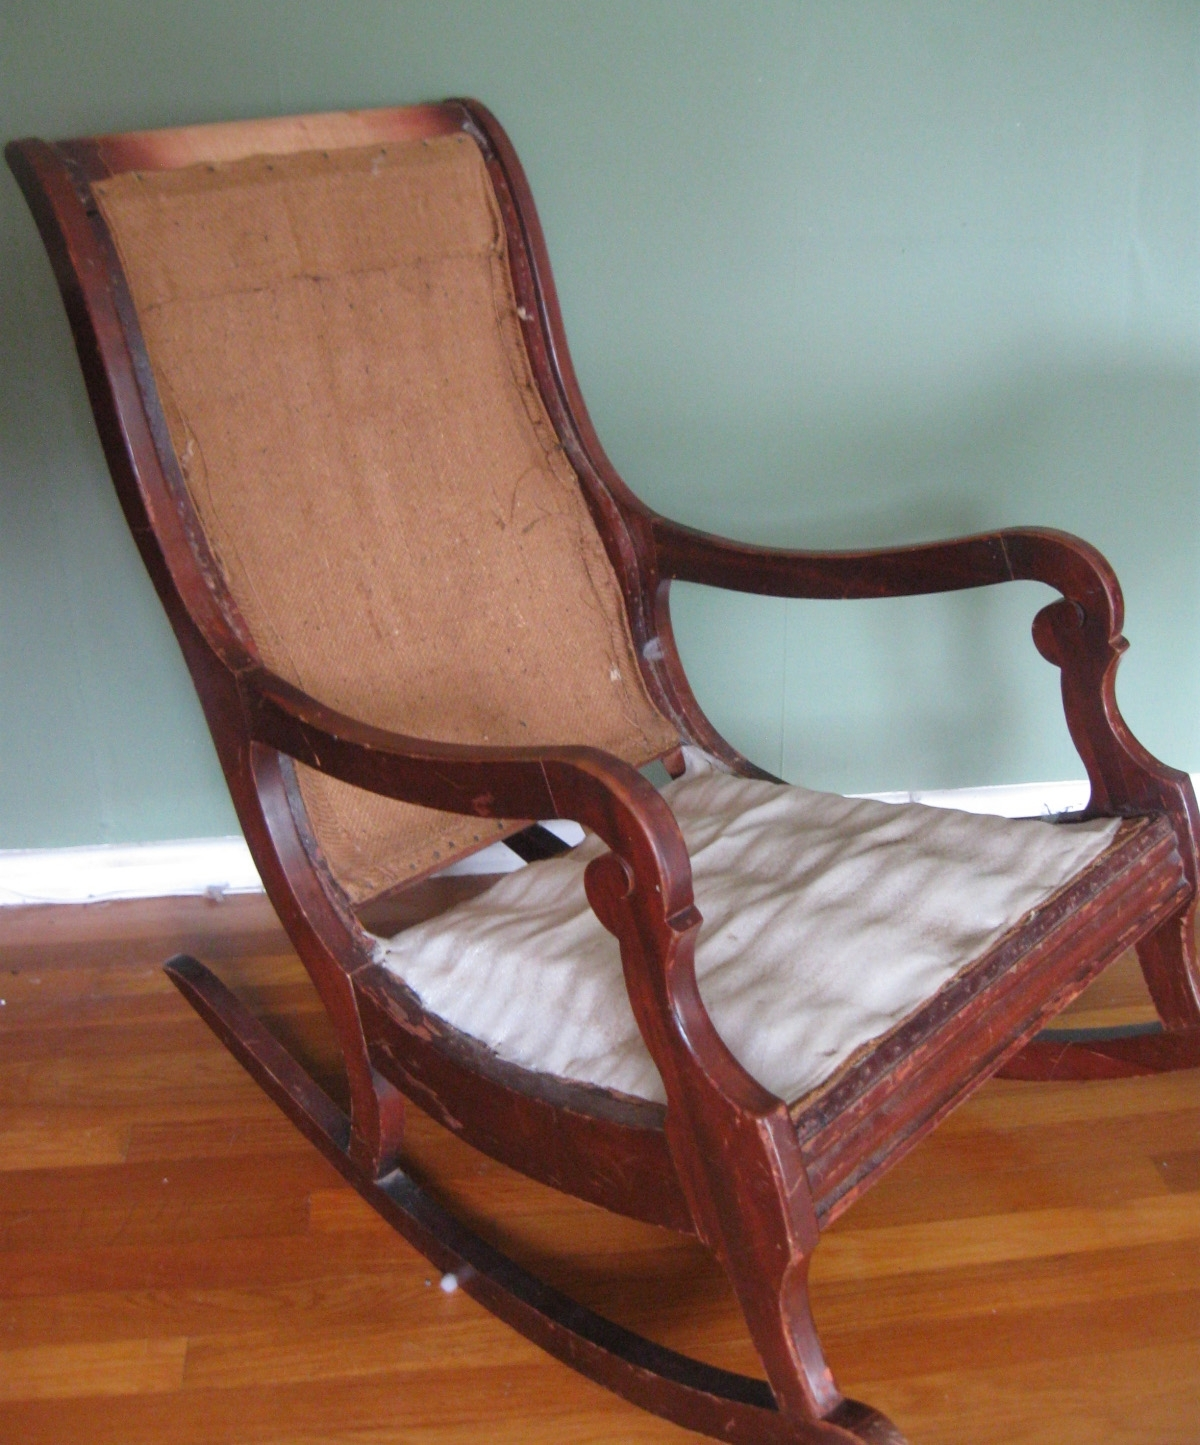 Rocking Chairs With Lumbar Support Within Newest Upholster Paint Rocking Chair Part Prodigal Pieces Chairs With (View 8 of 20)